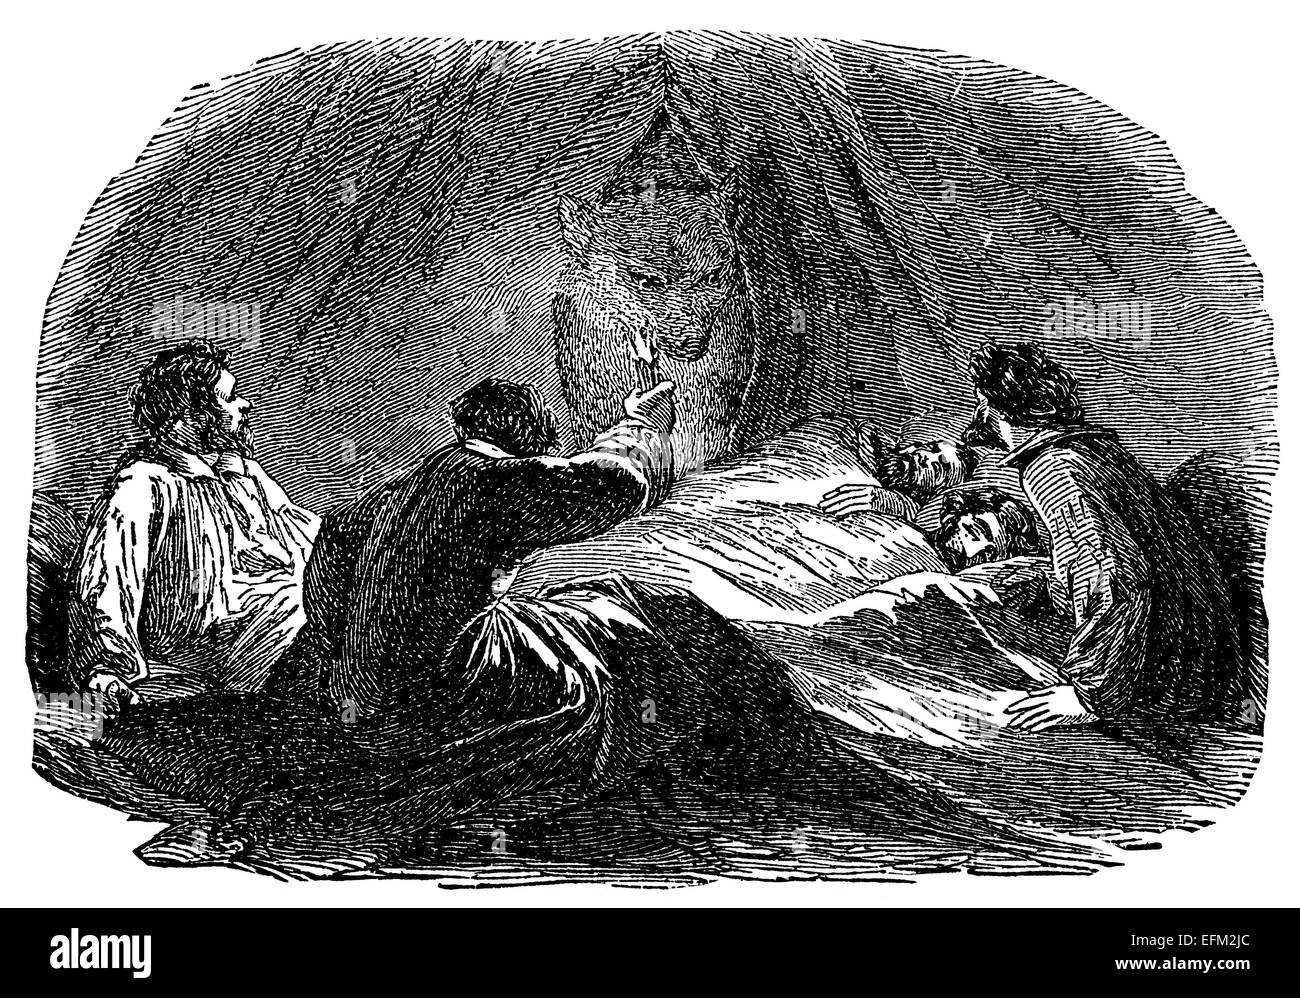 19th Century Engraving Of A Polar Bear Entering A Tent With People